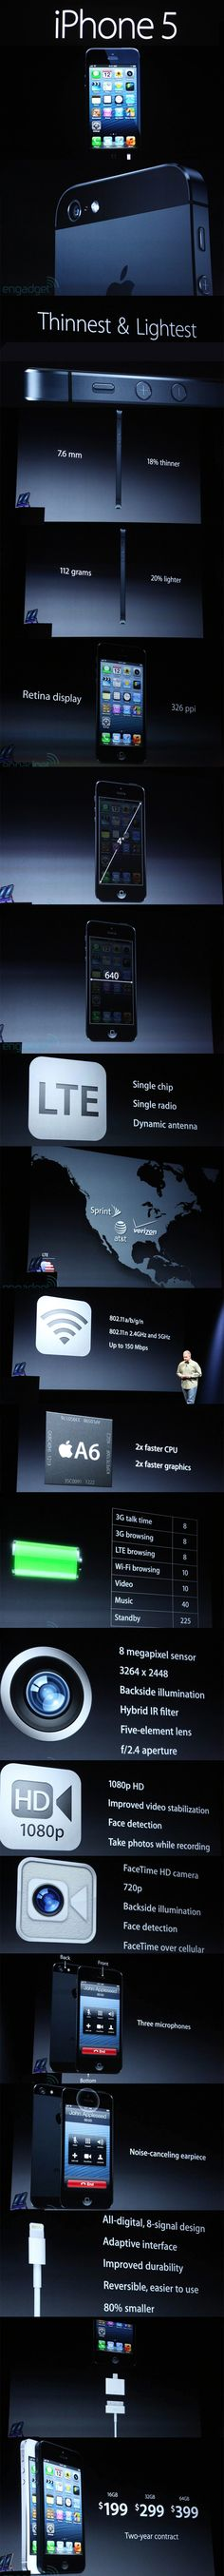 Apple iPhone 5 smartphone presentation - official. Images by Engadget. #Technology.